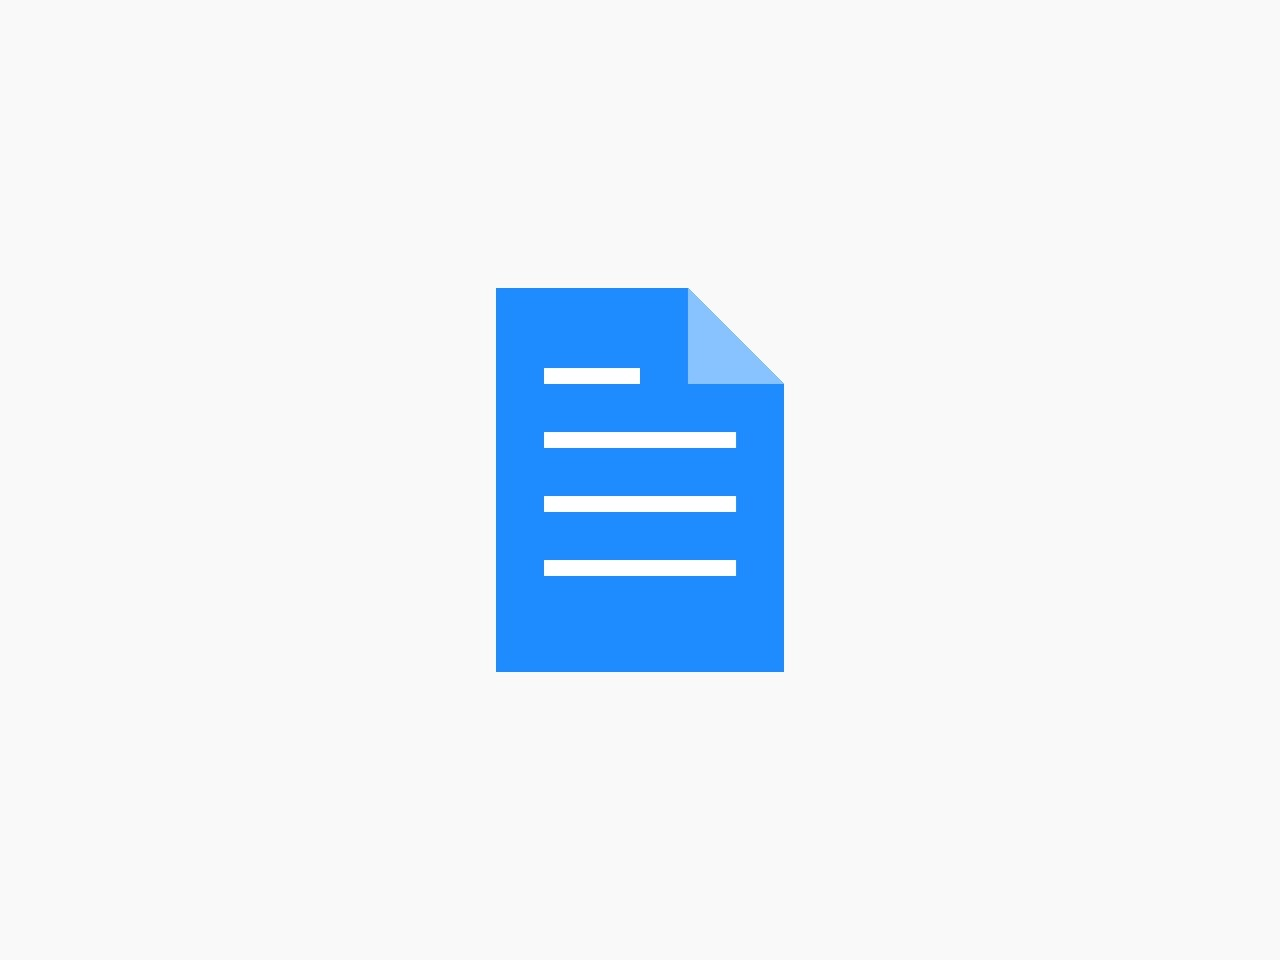 Photos: Two Mixed-Use Developments Being Constructed in South Orange